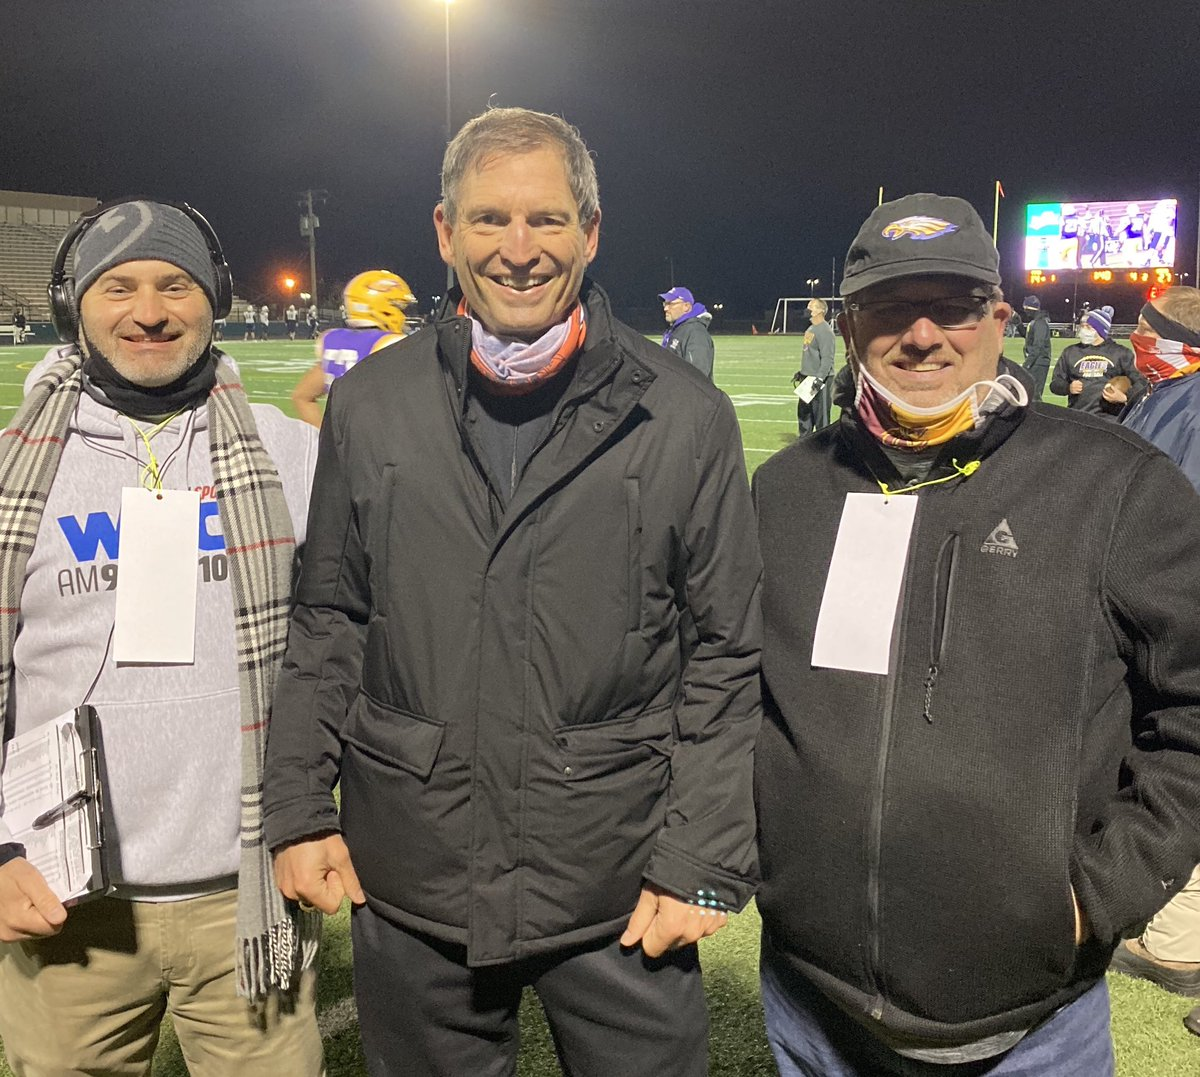 I LOVE hs football! Turns out, @BernieKosarQB does too. Had a great time w him tonight at @avoneagles vs Hoban game. @AM930FM1003WEOL sideline guy @craig_couch had a chance to stop by too. Fun night w a @Browns  legend! https://t.co/TL5eSny8i1